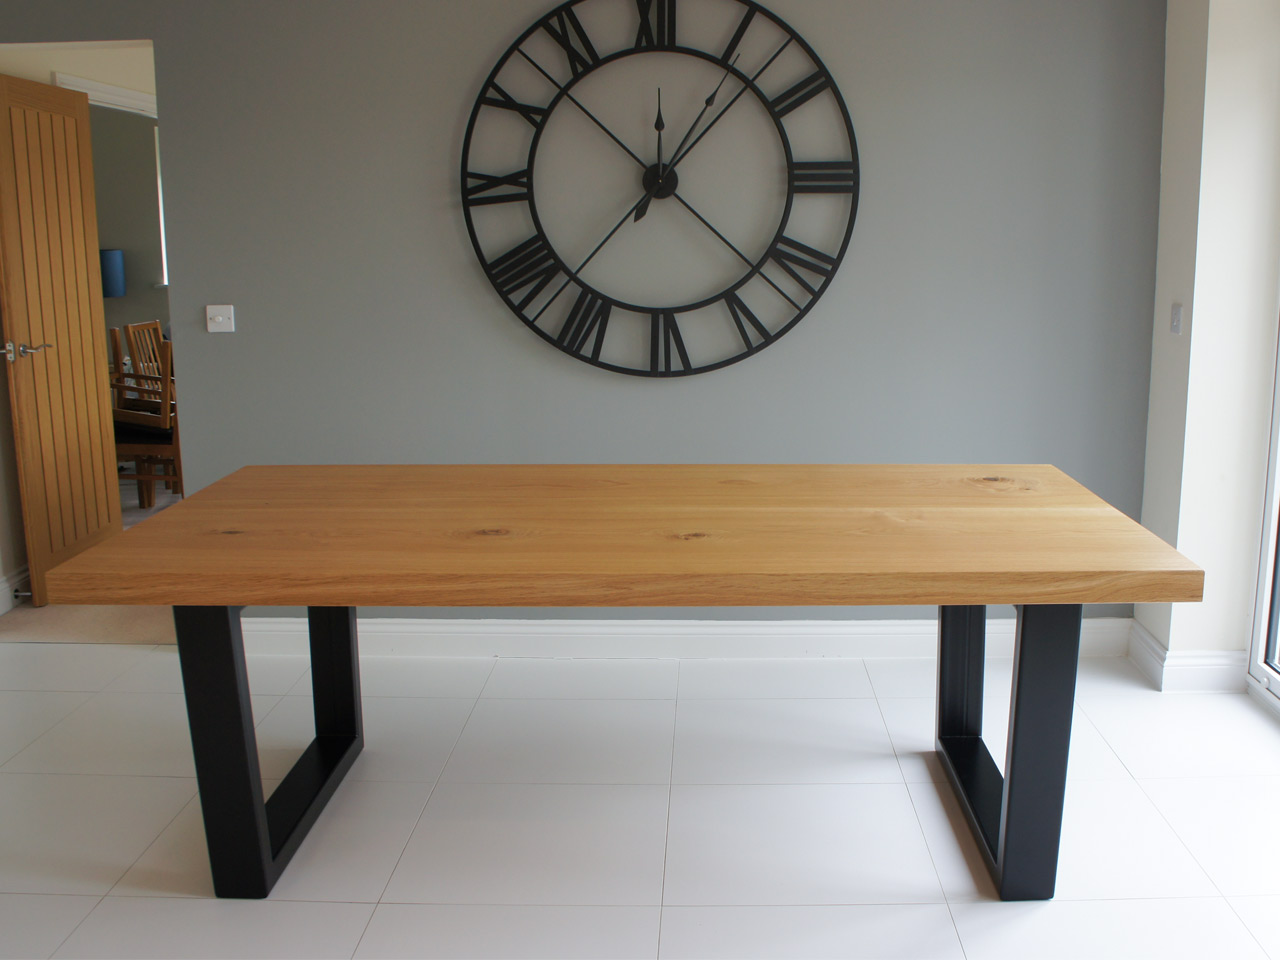 abacus-tables-project-836-pic-2